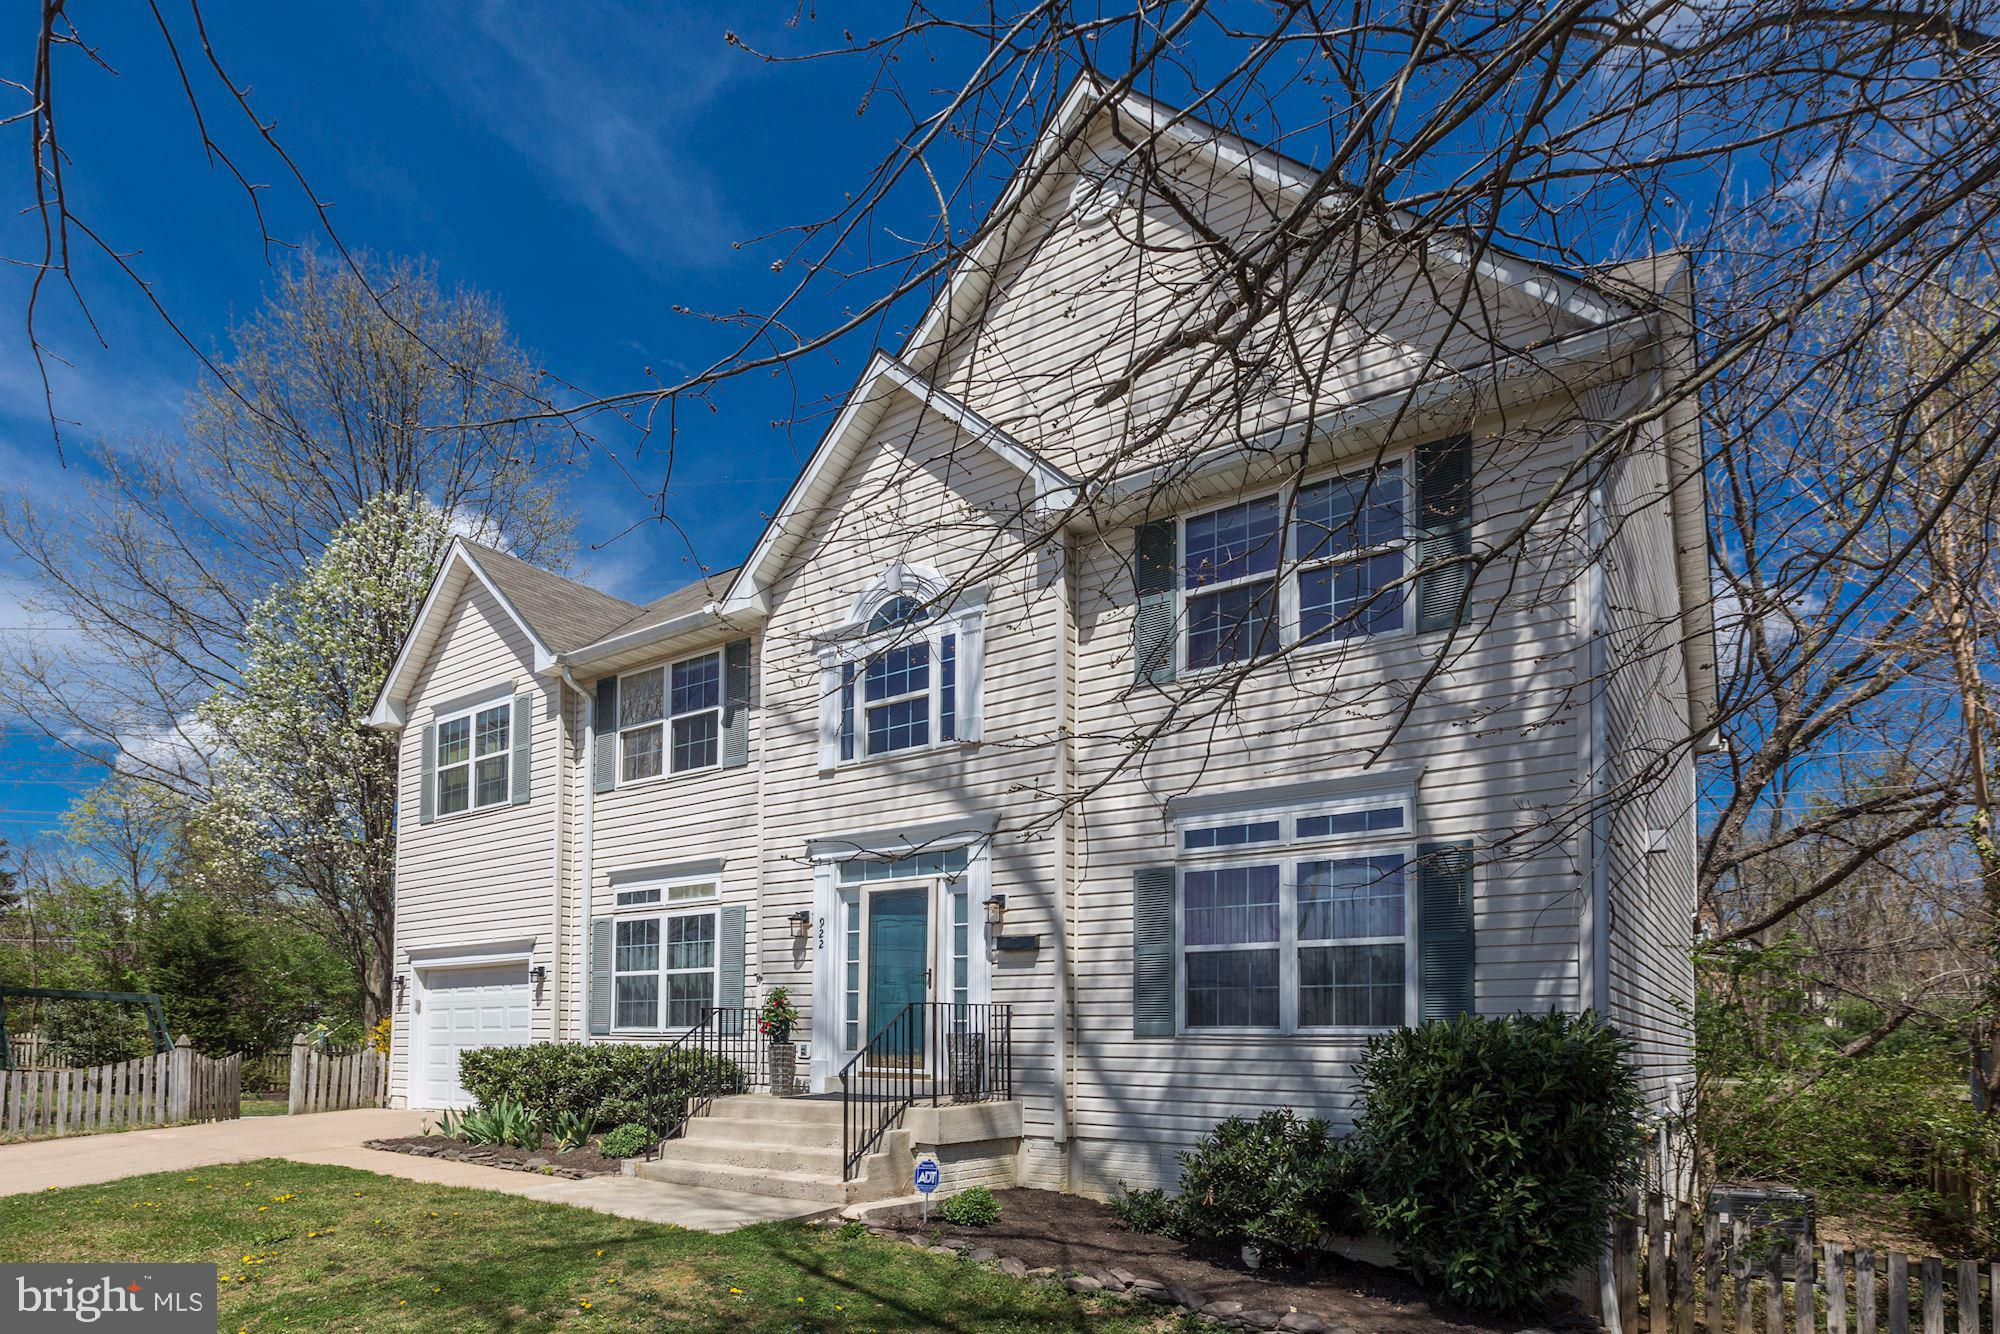 922 PARK AVENUE, FALLS CHURCH, VA 22046